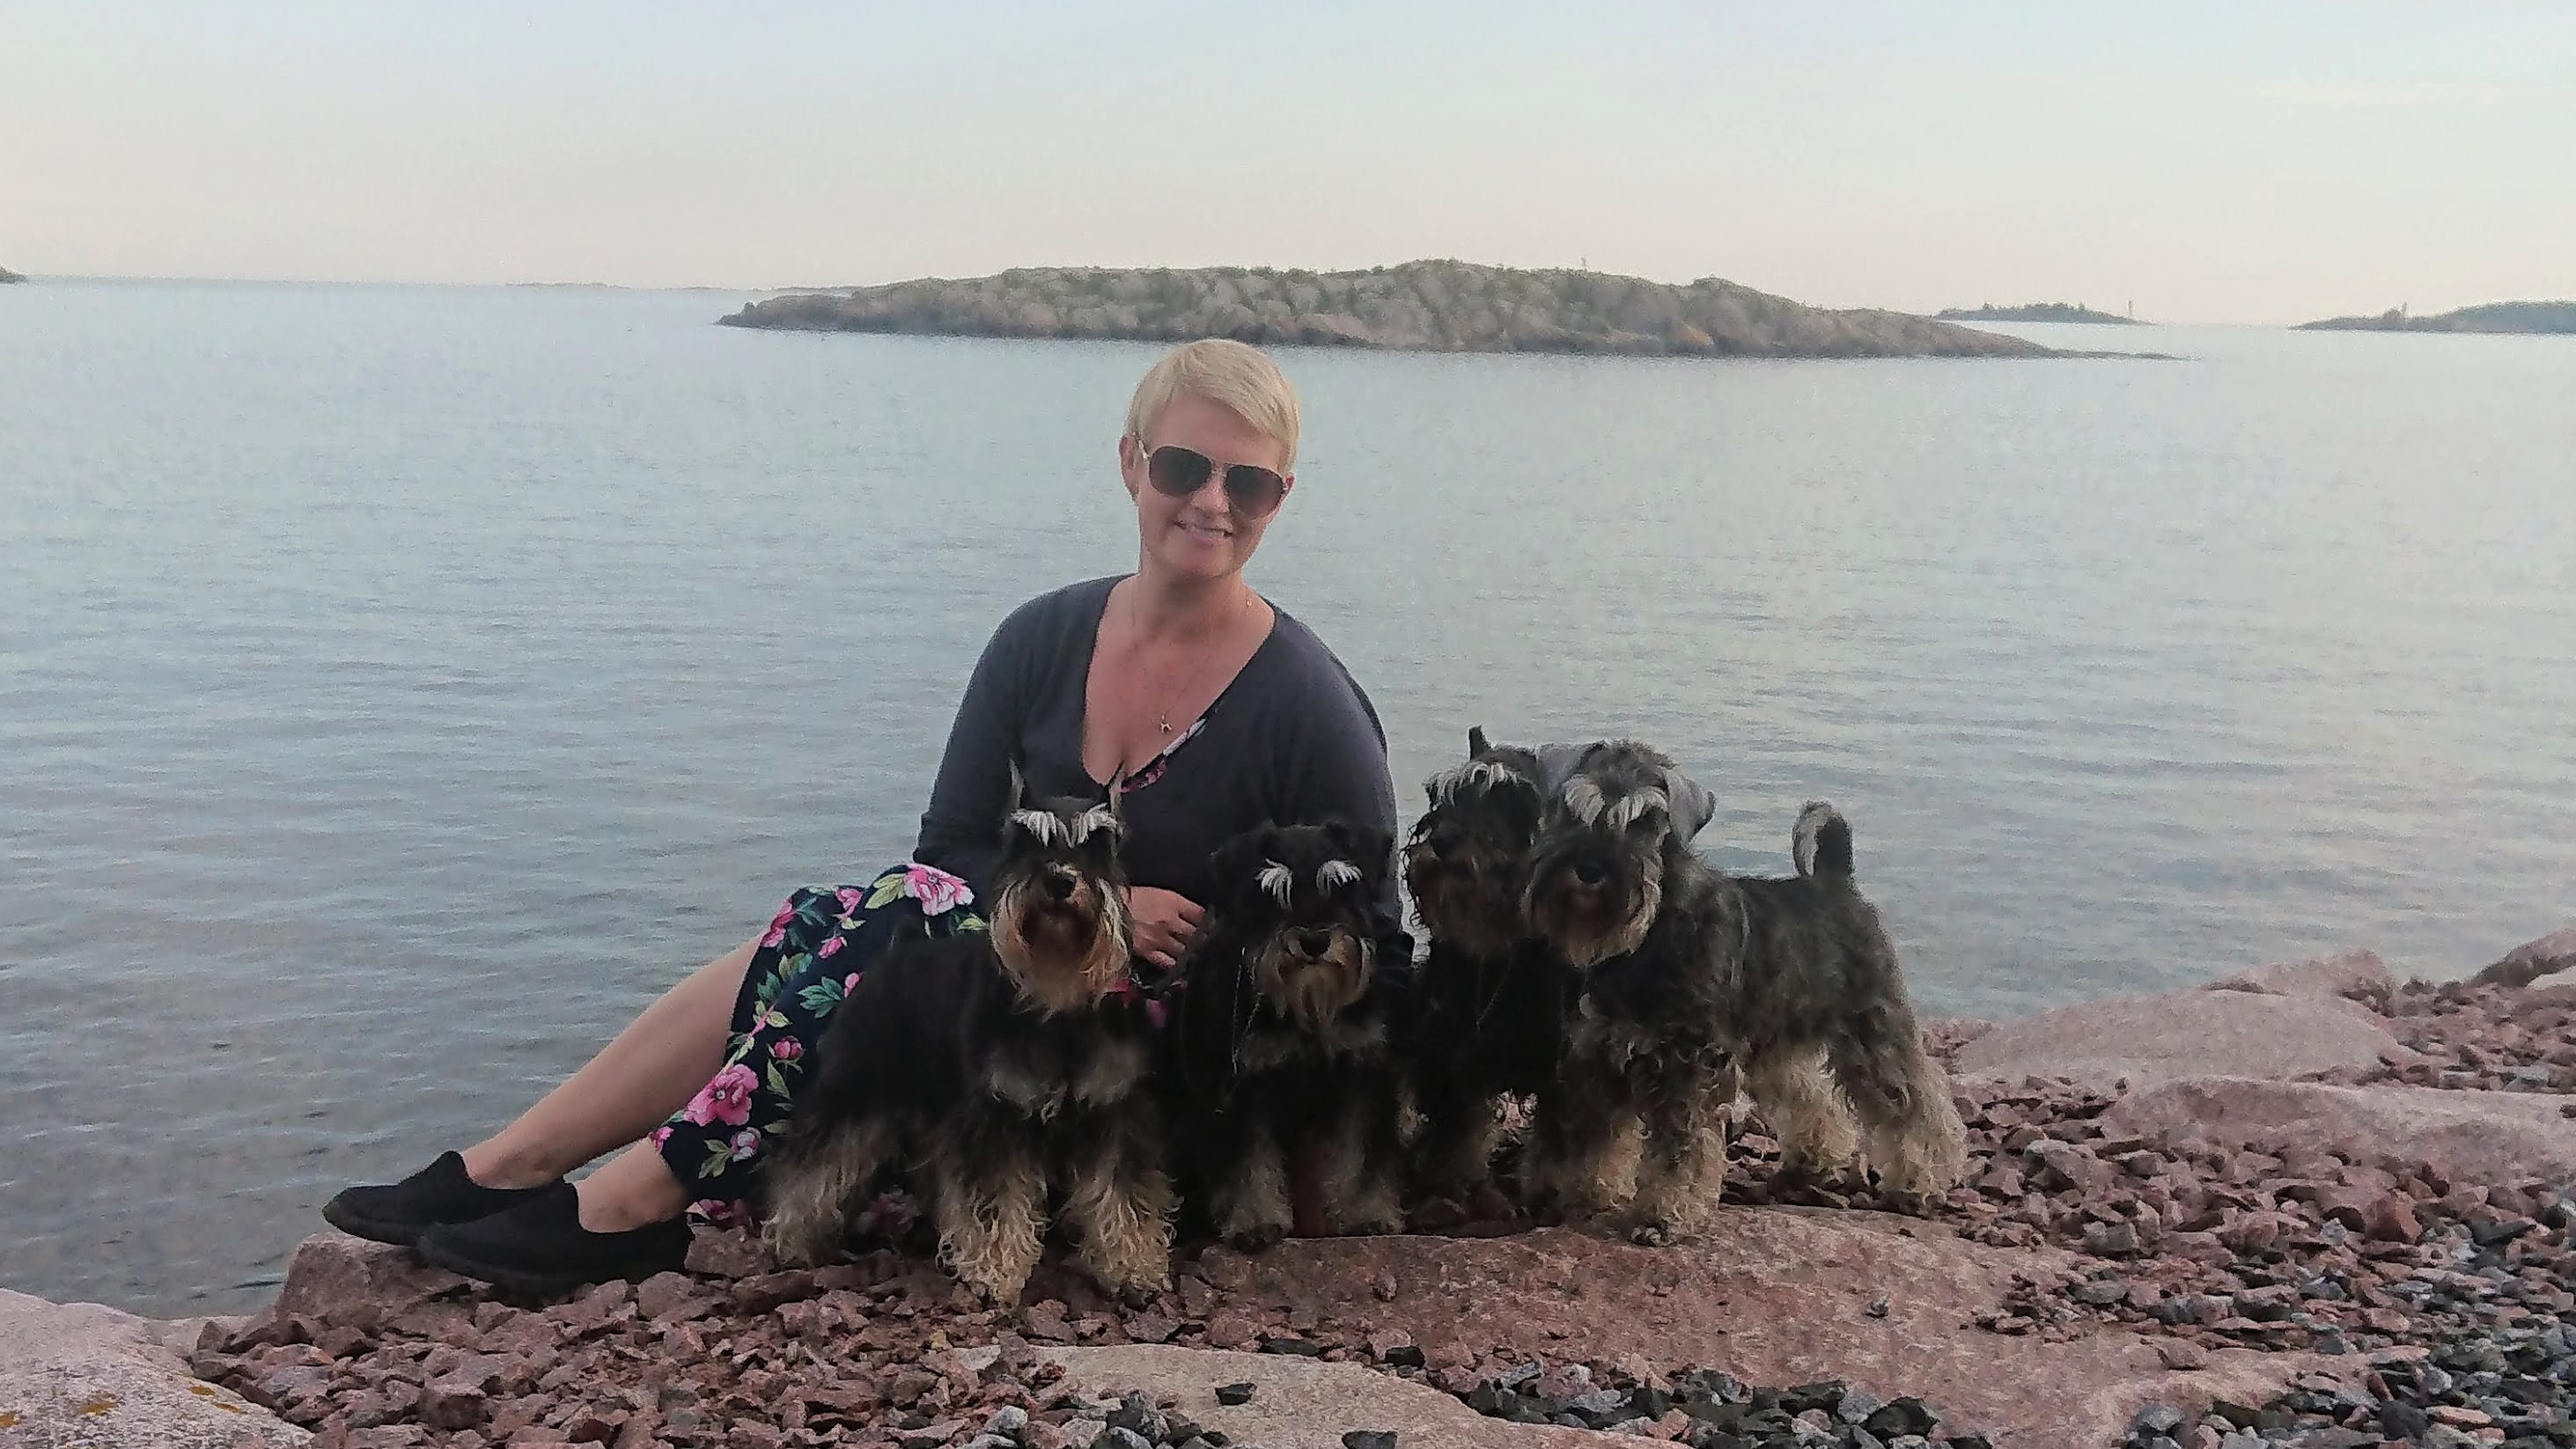 Niina with dogs